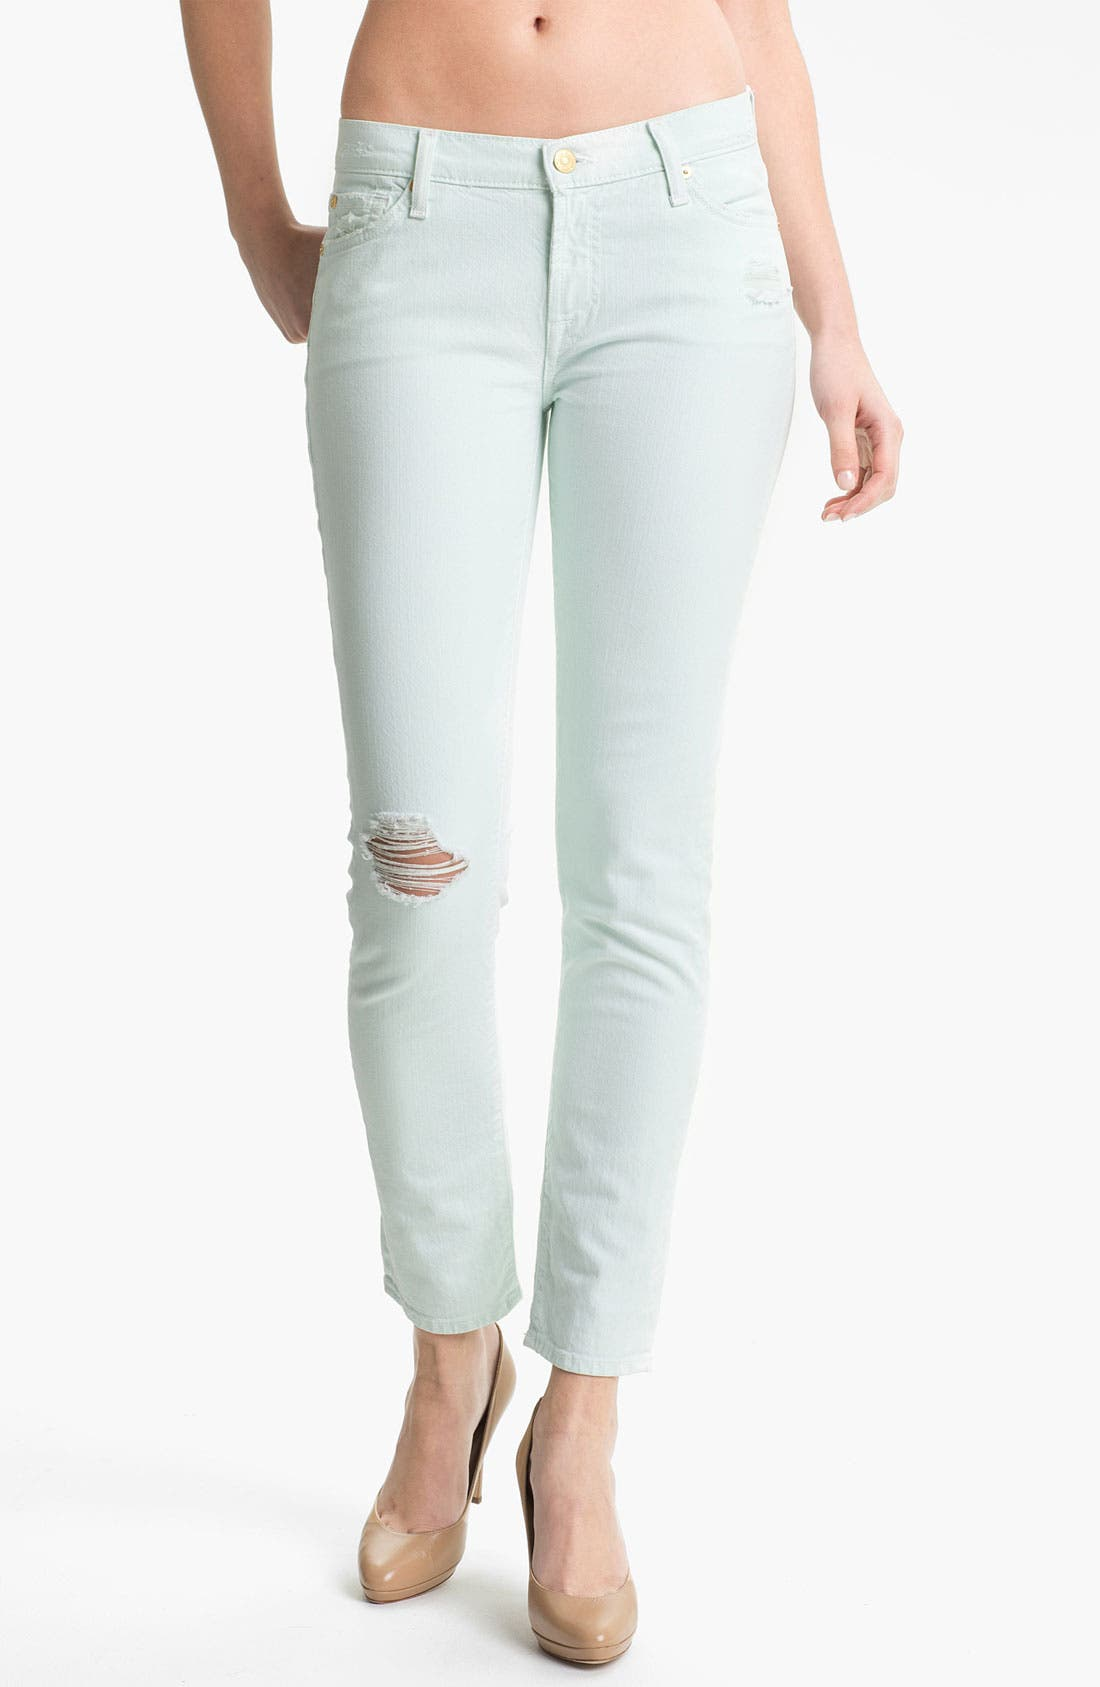 Main Image - 7 For All Mankind® 'The Slim Cigarette' Stretch Jeans (Aqua Destroyed)